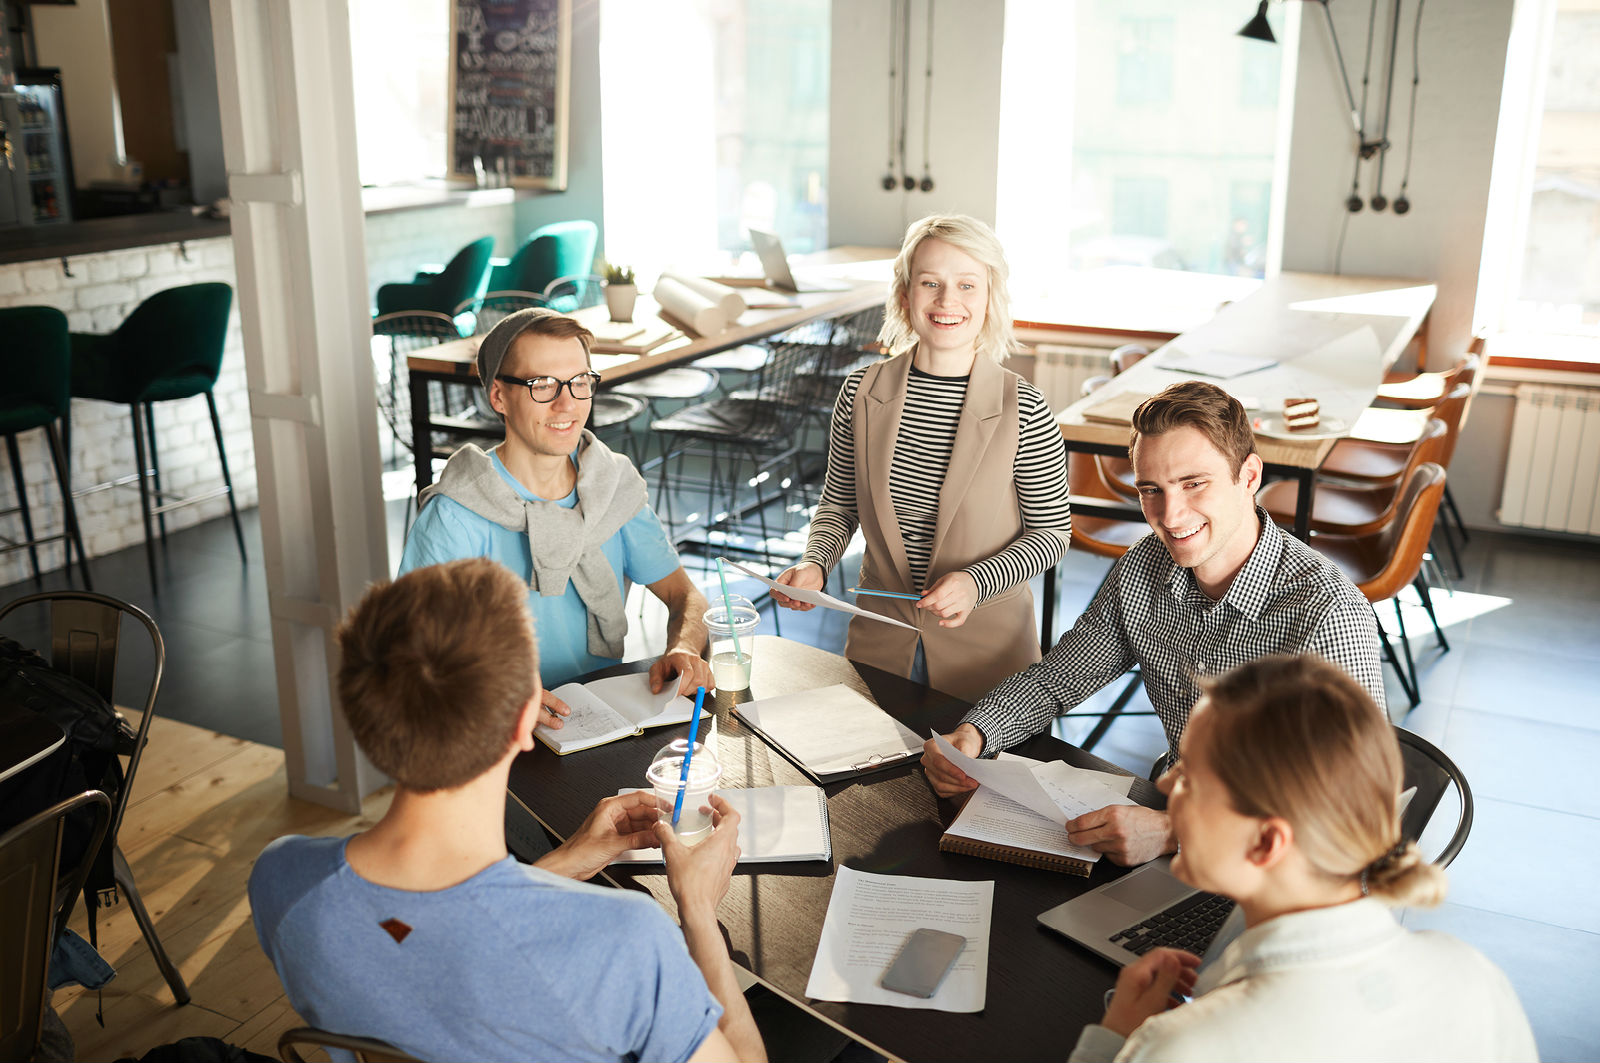 3 Ways Wise Leaders Make Team Meetings More Productive